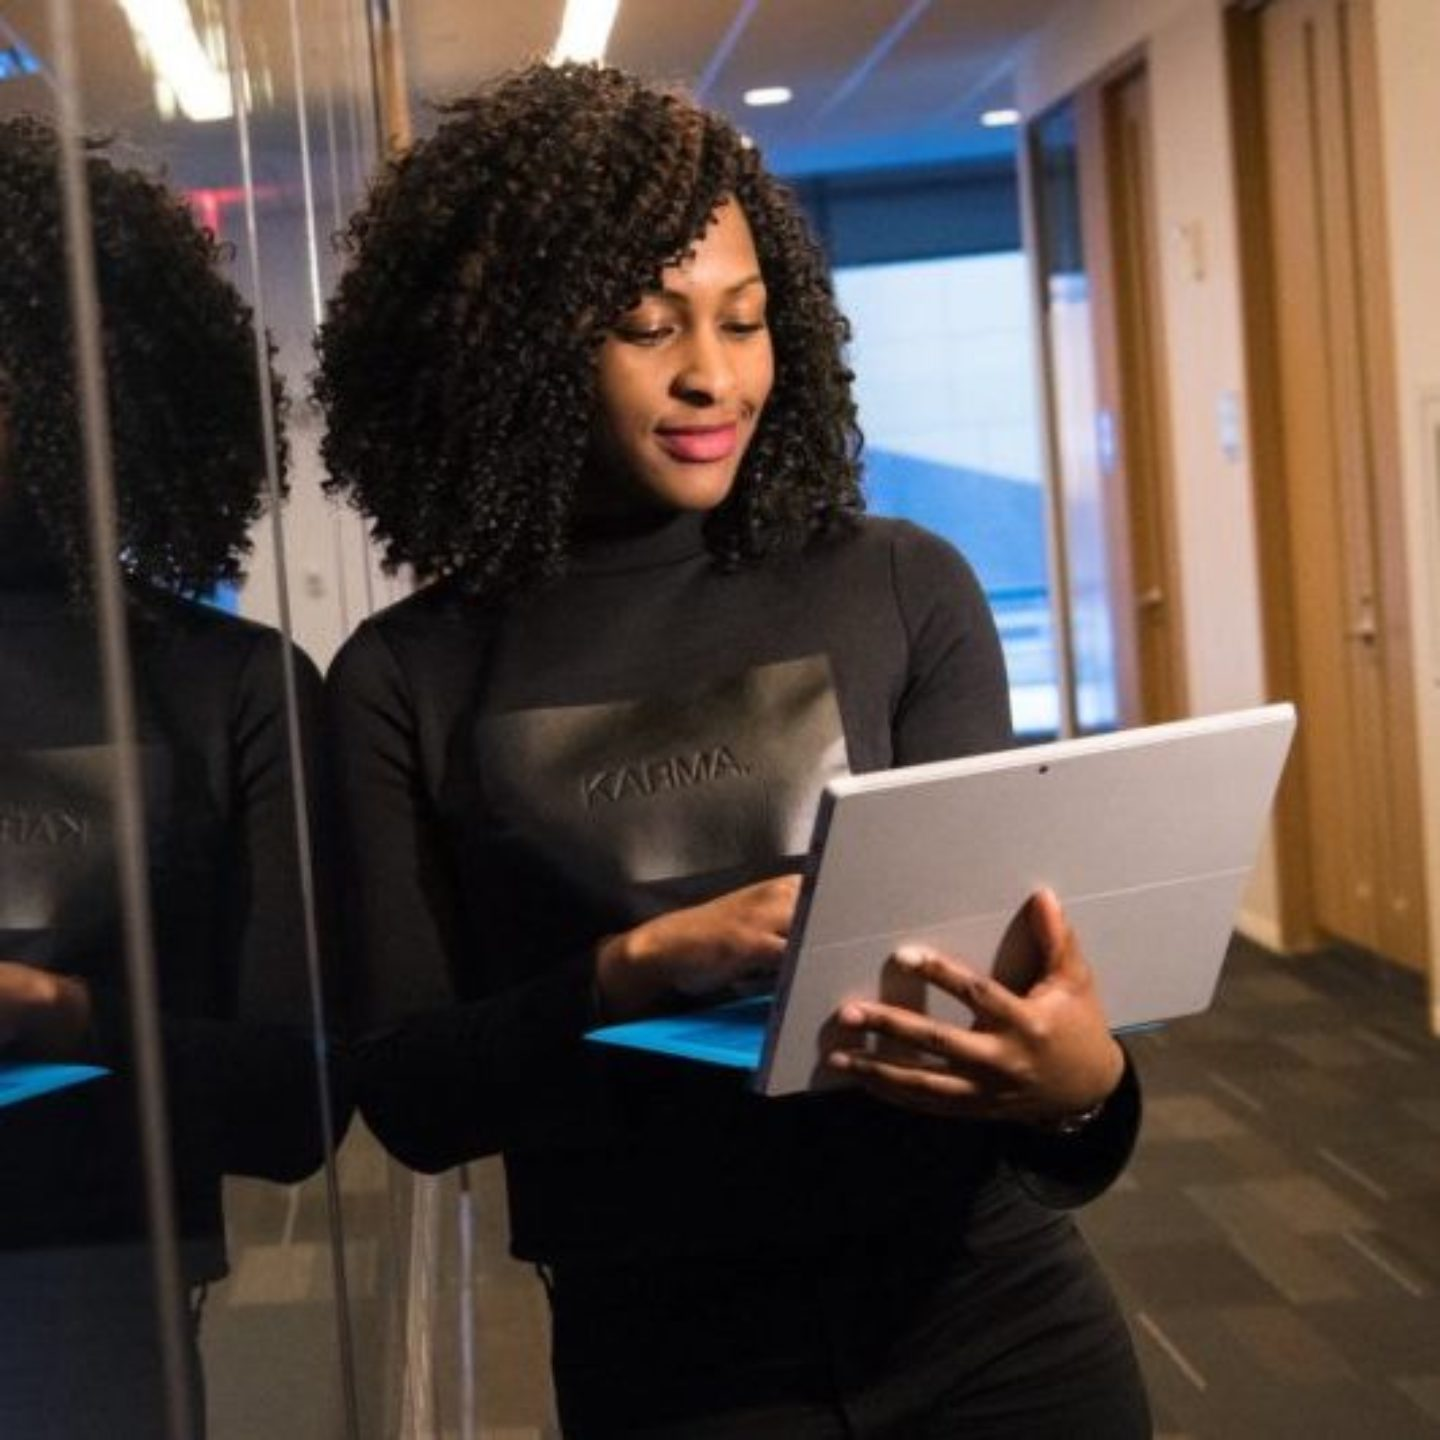 Woman of color with her laptop in front of computer server.